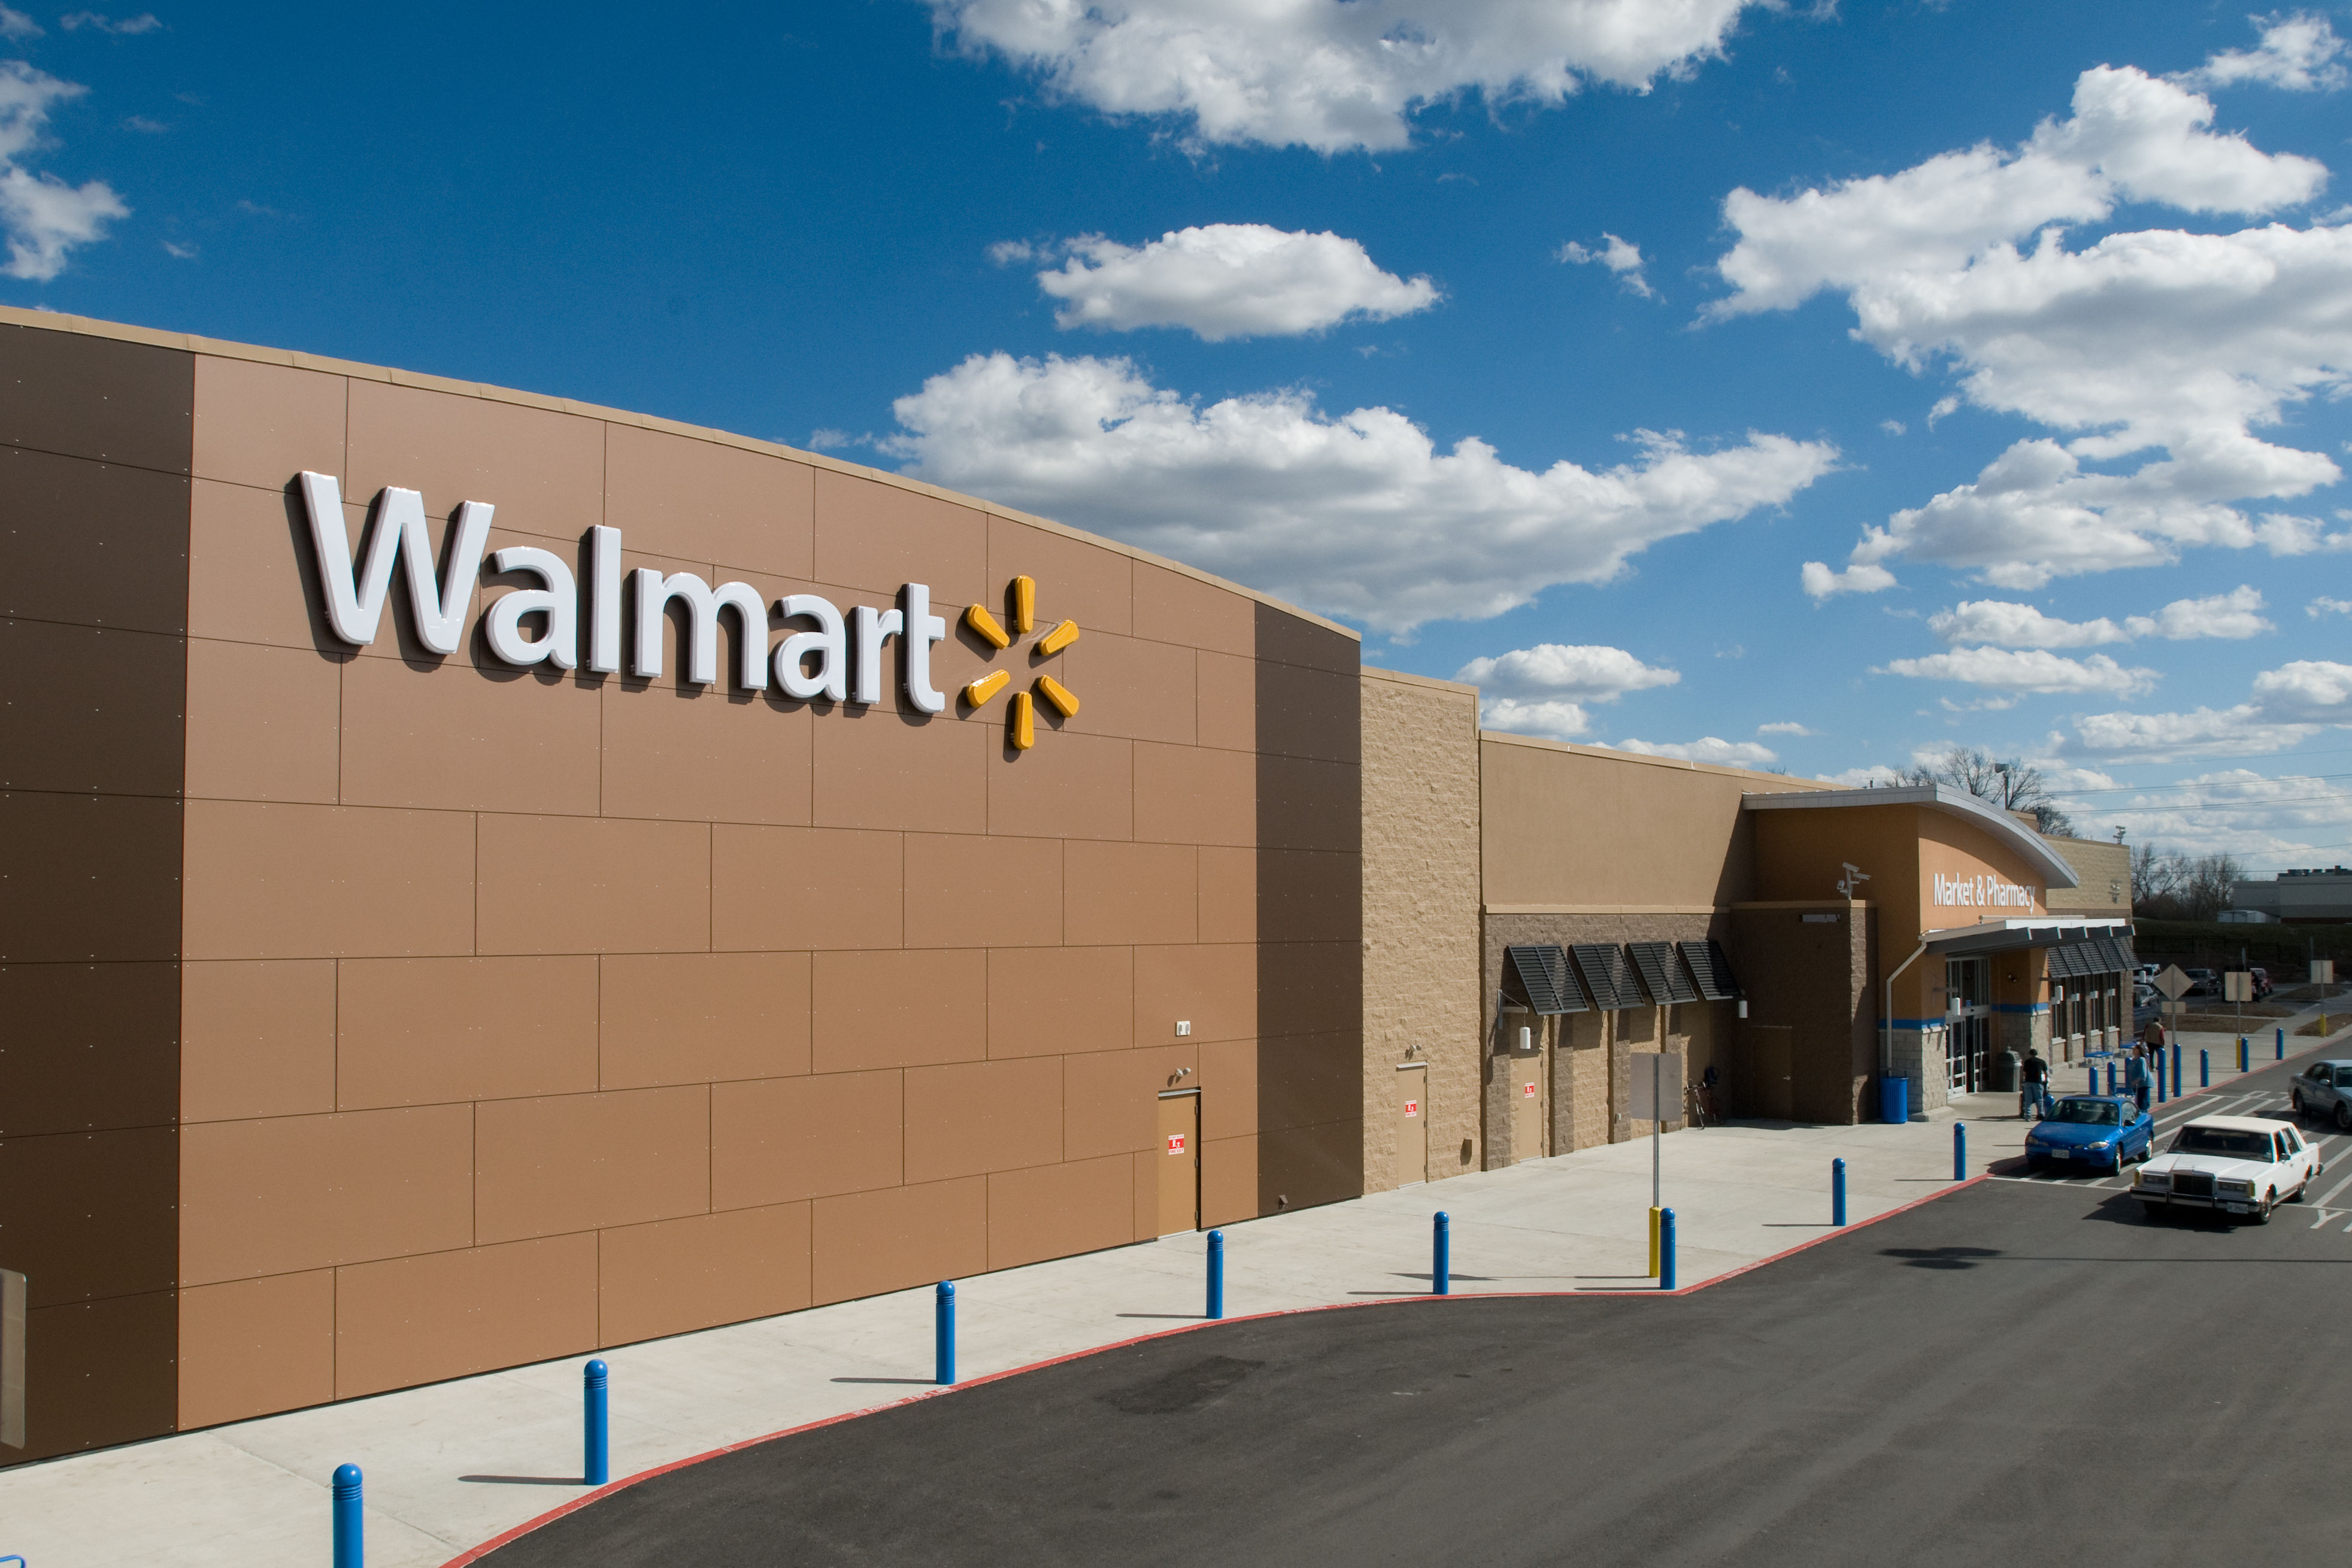 7 Things You Never Realized You Could Buy at Walmart — and Why You Should